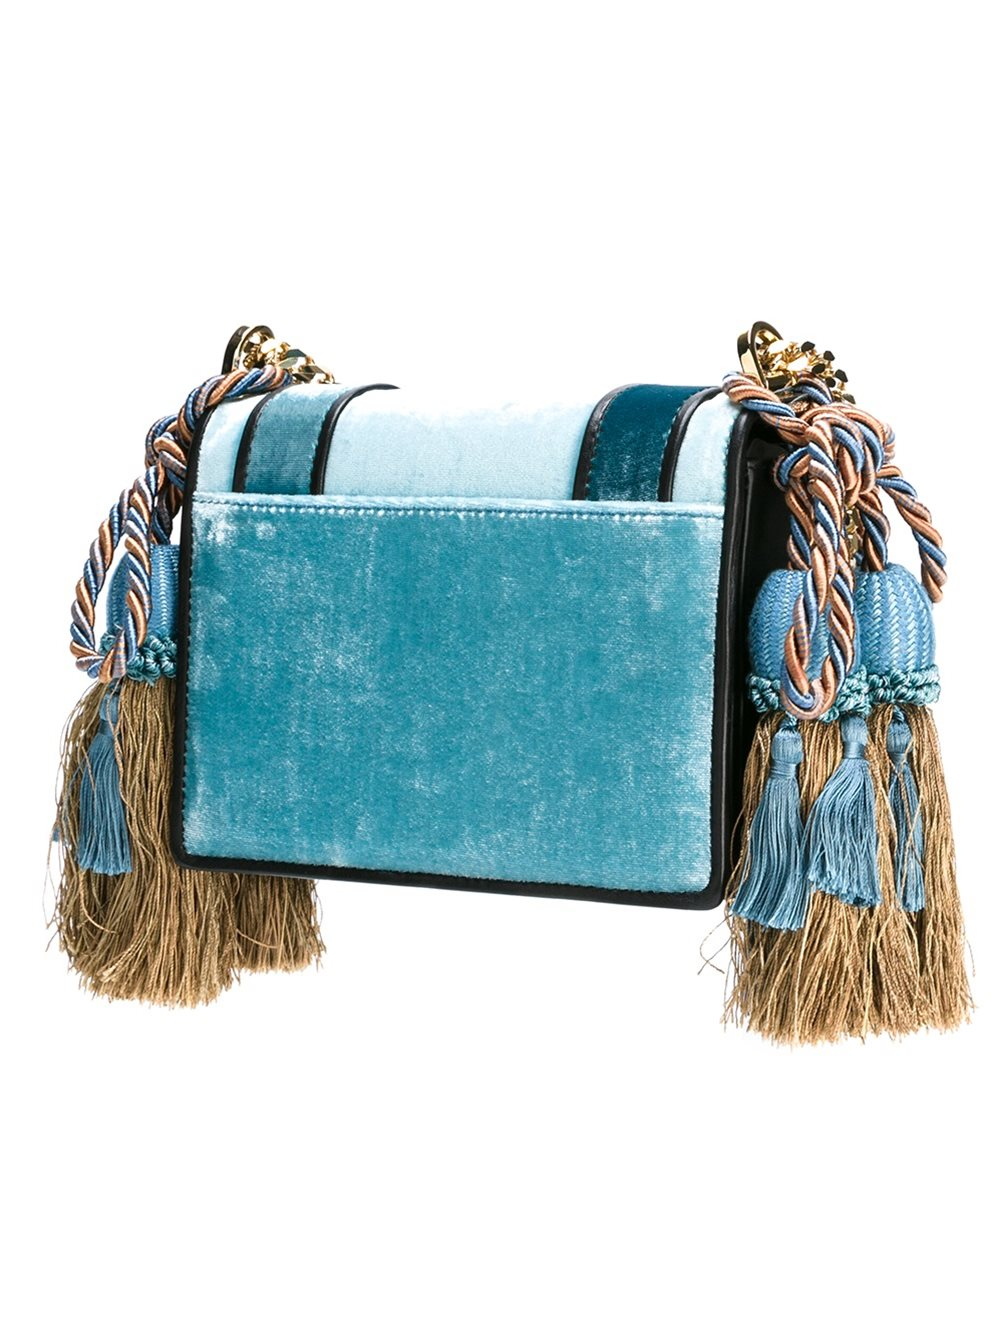 DSquared² Velvet Medium 'dd' Crossbody Bag in Blue